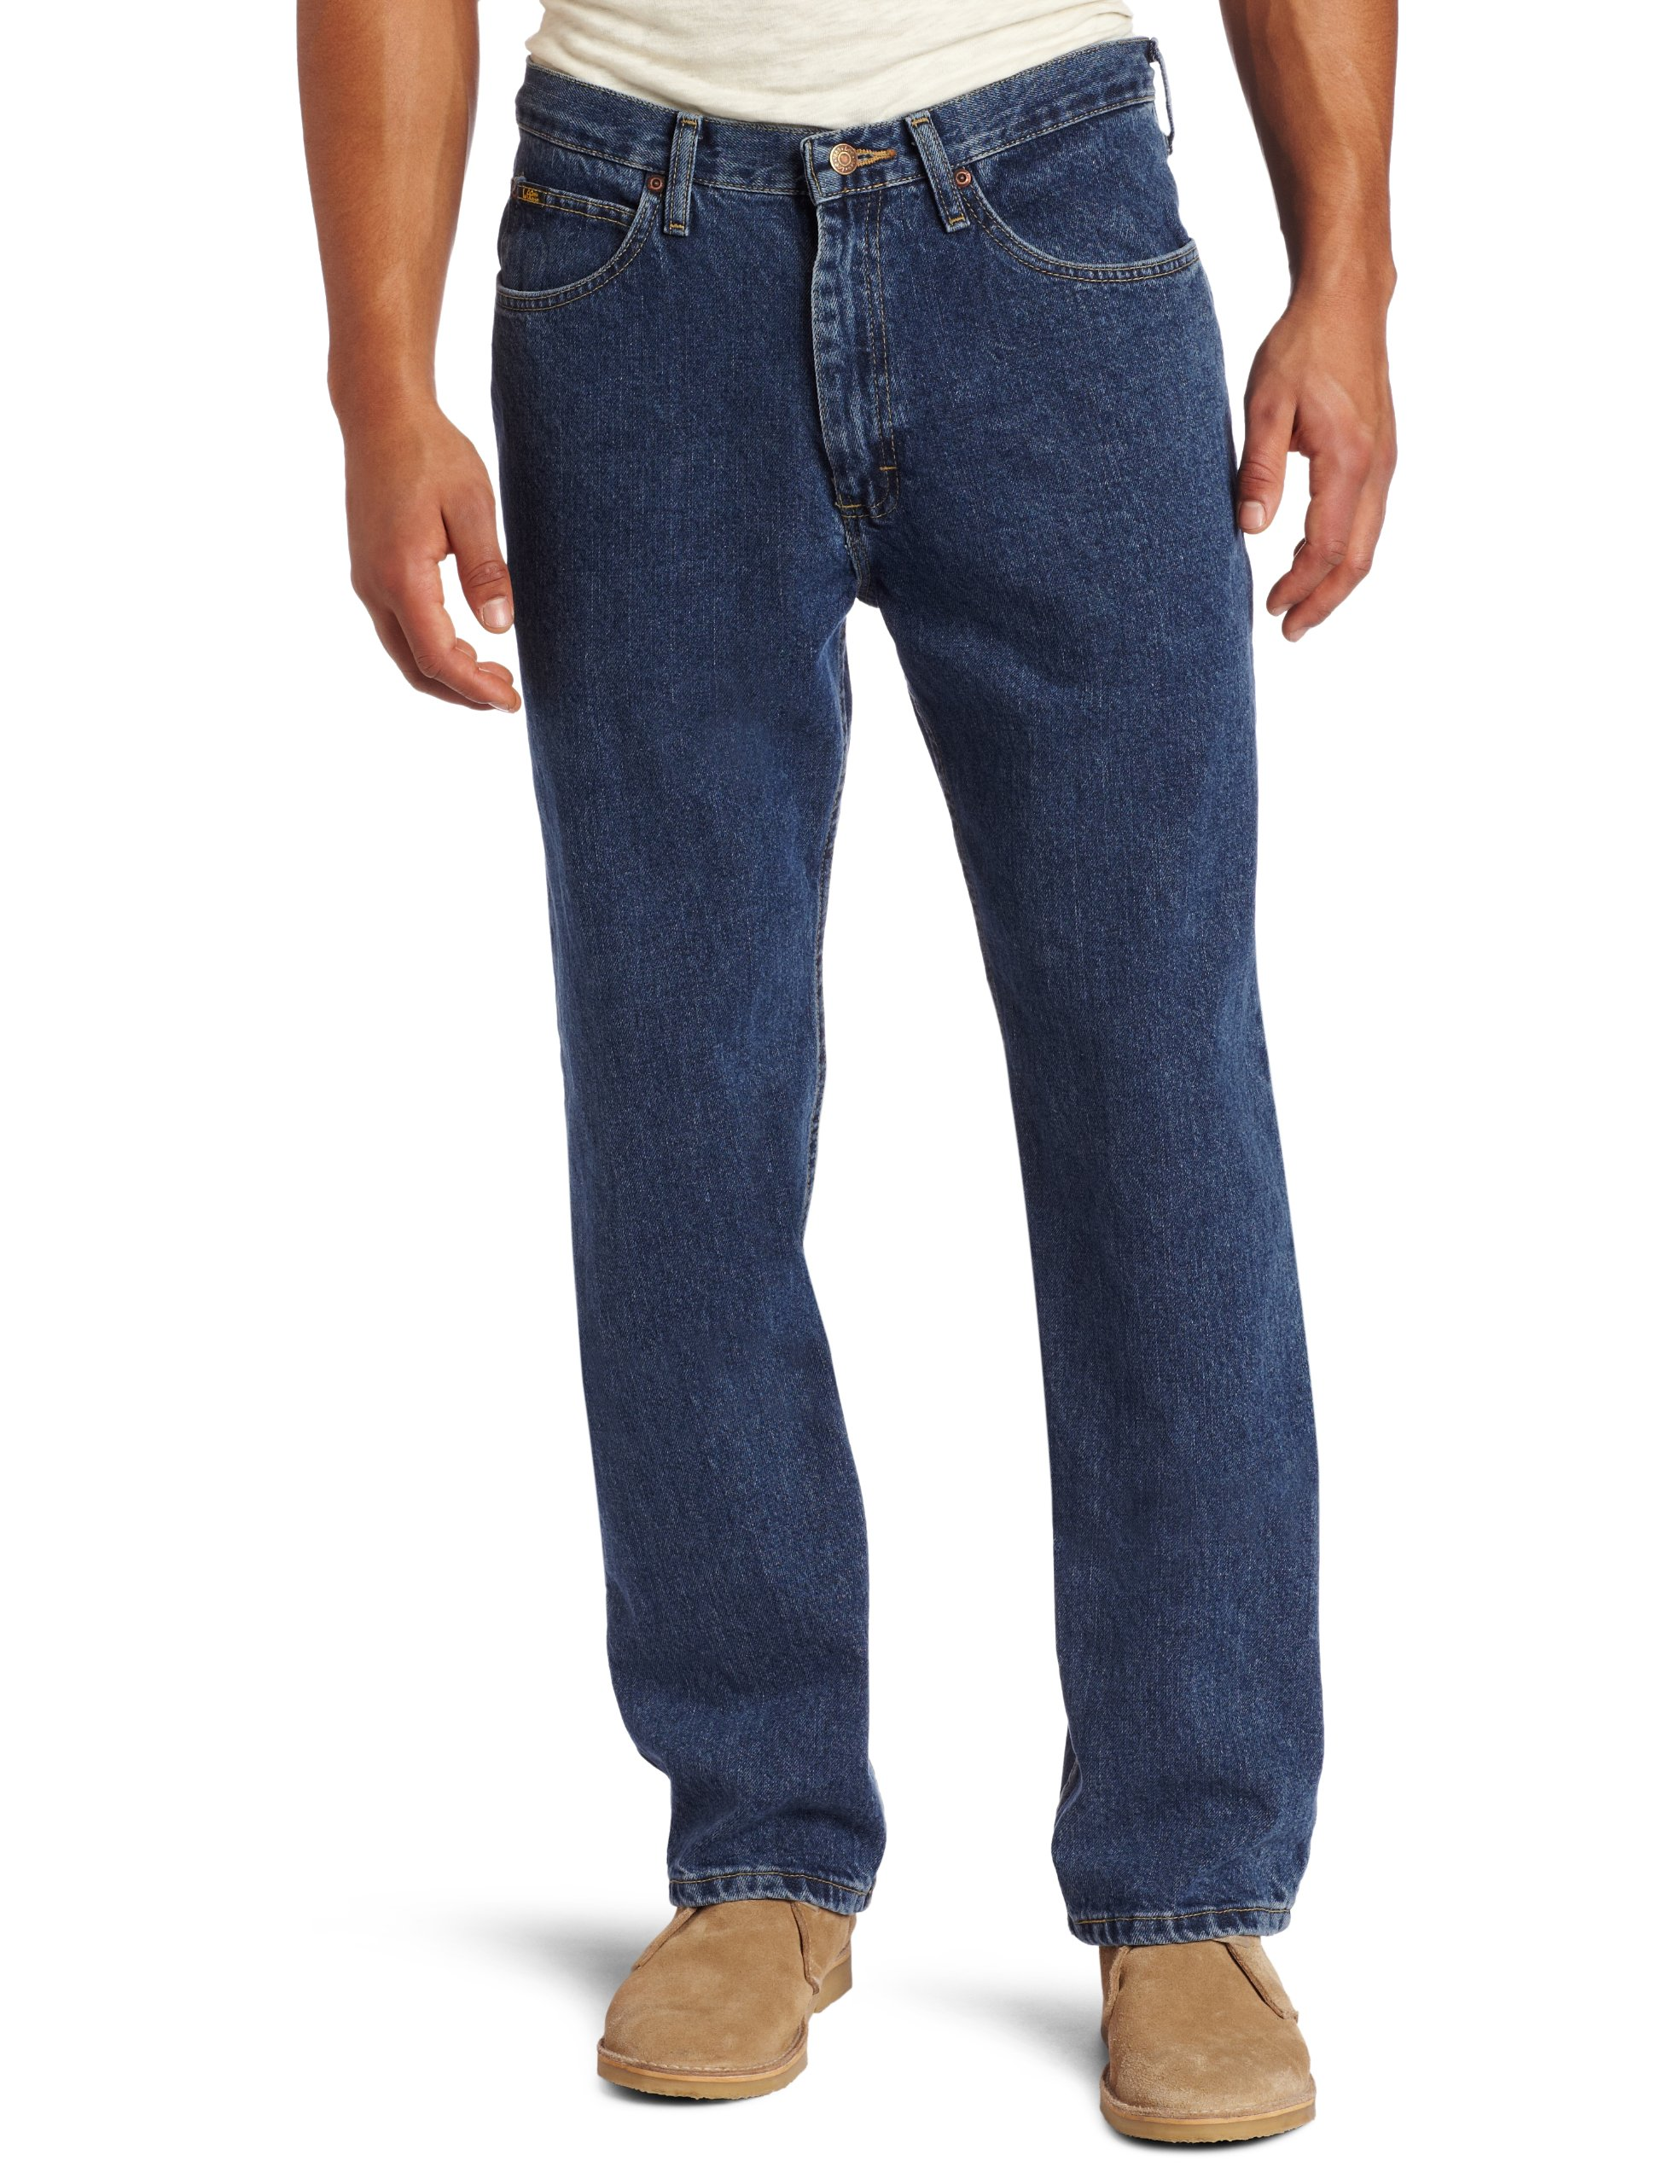 Lee Men's Relaxed Fit Straight Leg Jean, Medium Stone, 34W x 32L by LEE